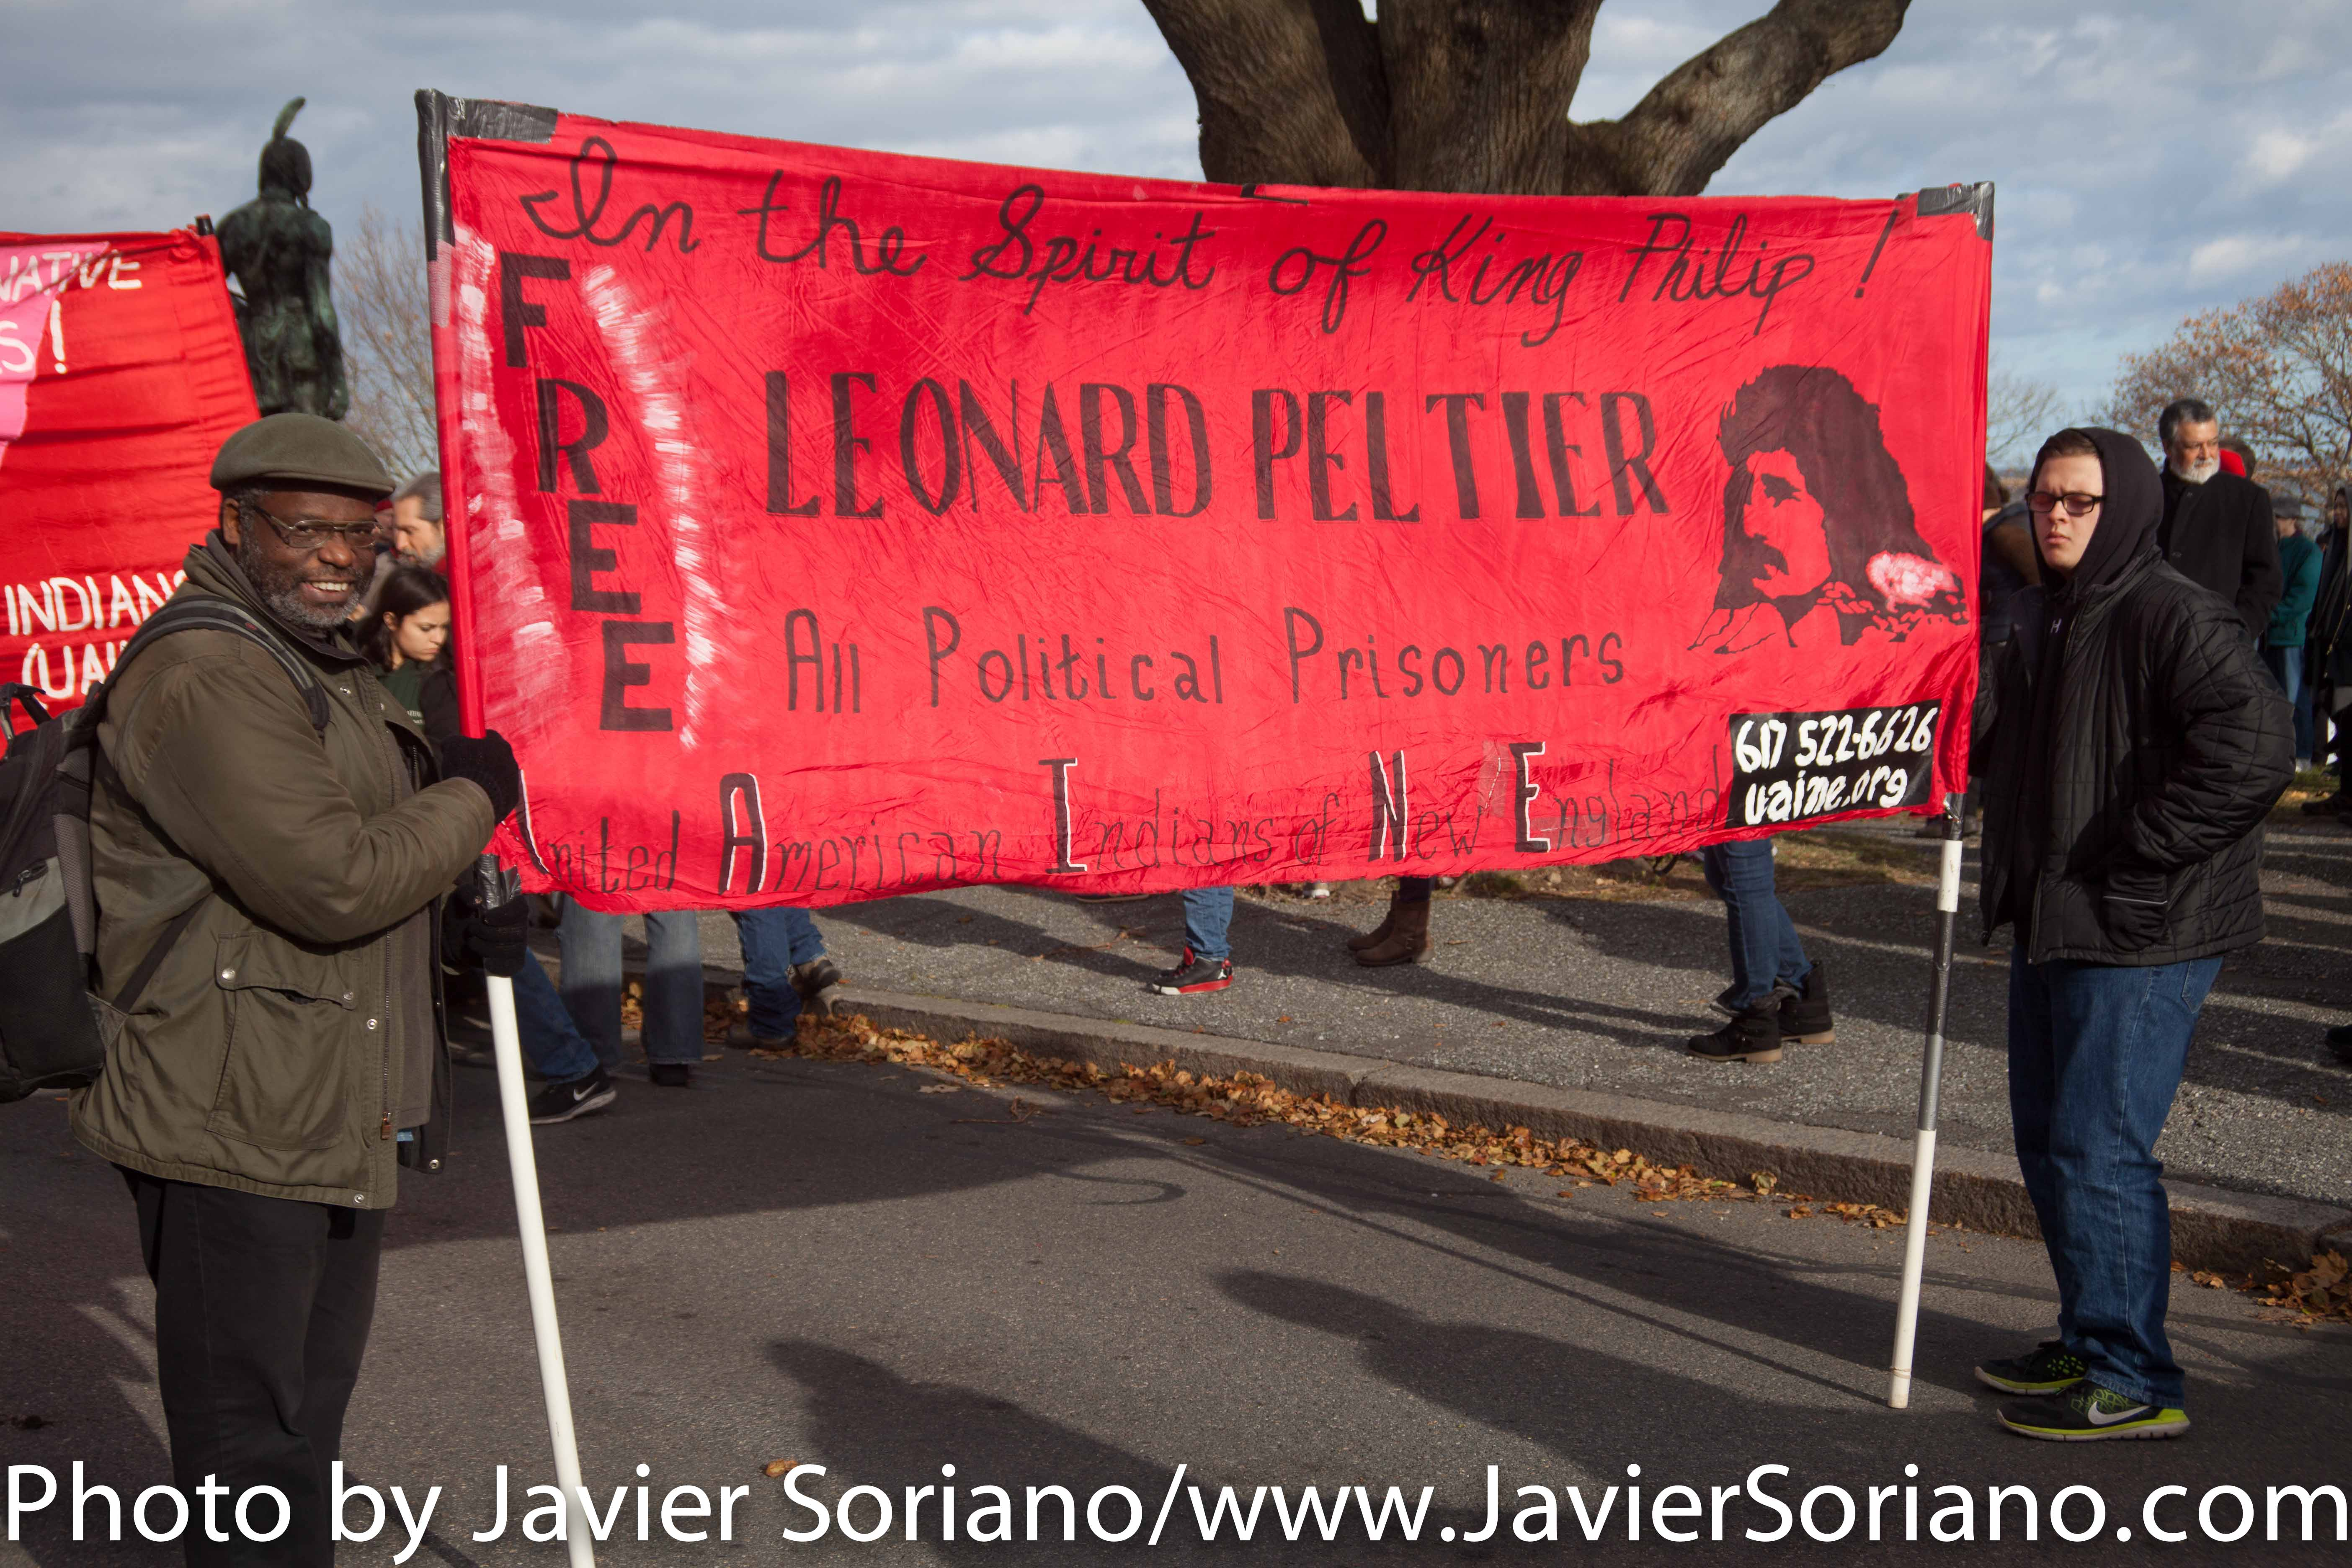 11/27/2014. Plymouth Rock, Massachusetts – 45th National Day Of Mourning dedicated to Leonard Peltier. Photo by Javier Soriano/www.JavierSoriano.com